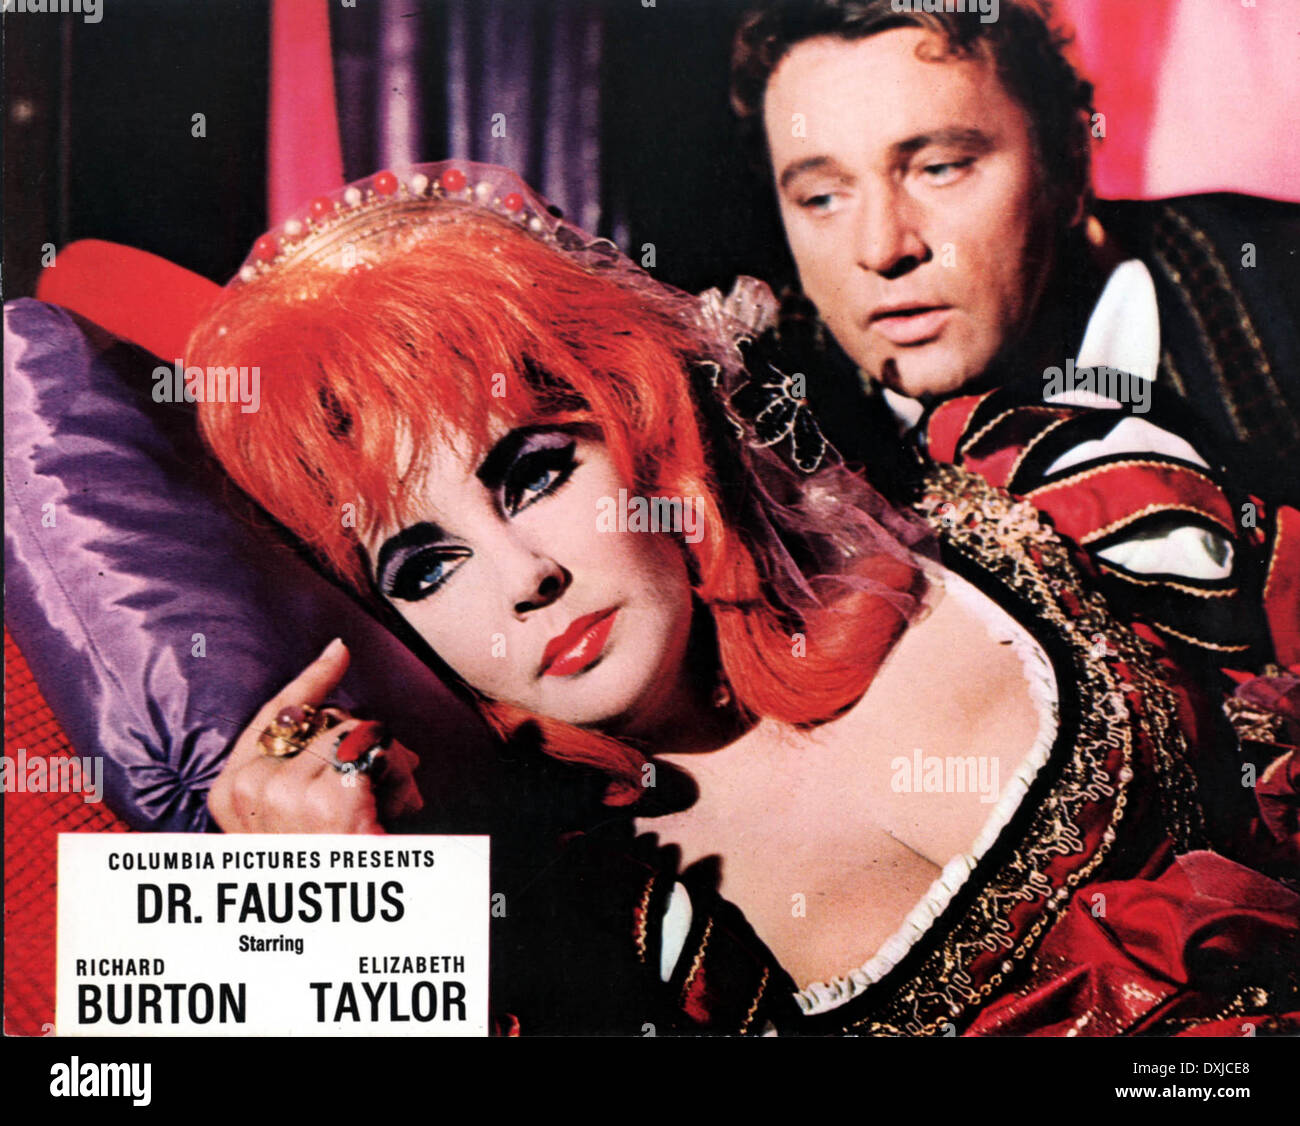 DOCTOR FAUSTUS (BR1967) Richard Burton as Doctor Faustus Eli - Stock Image